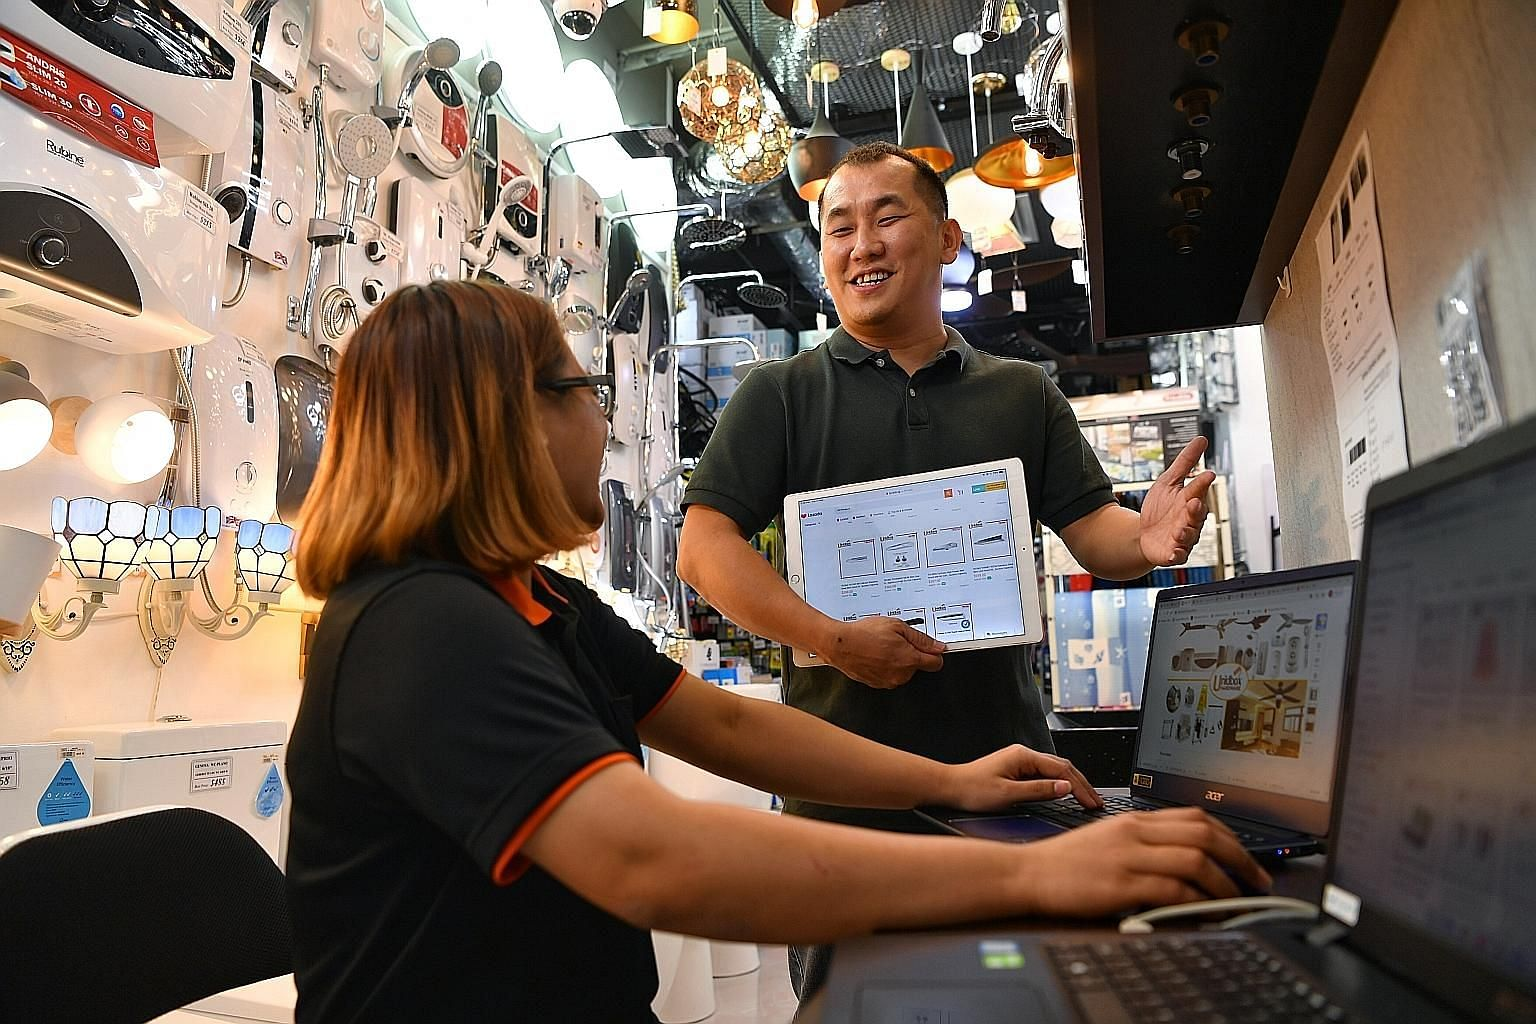 Mr Wong Hing Kong, director of Unidbox Hardware, with employee Sharon Keong, who is in charge of e-commerce, at the firm's Upper Serangoon Road outlet. The hardware store has seen a boost in sales because of e-commerce. Mr Wong went for digitalisatio